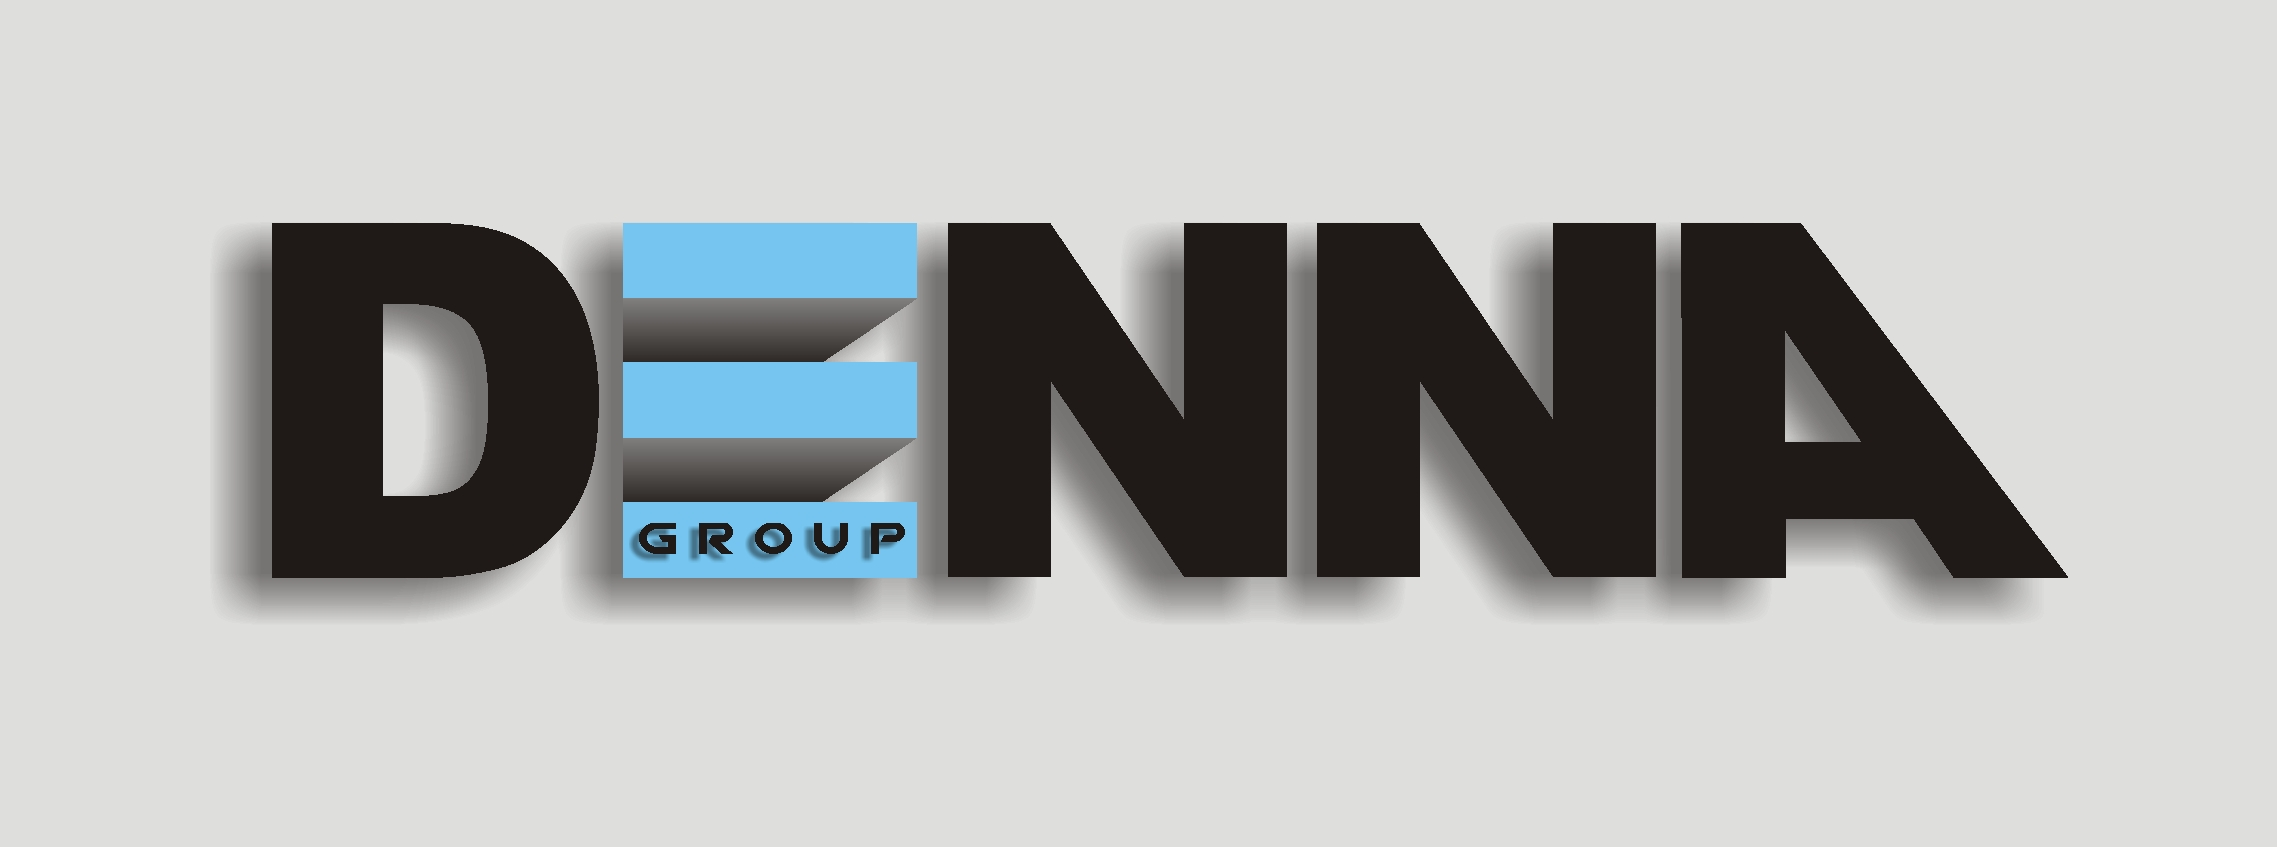 Logo Design by Arthur Aquino - Entry No. 206 in the Logo Design Contest Denna Group Logo Design.